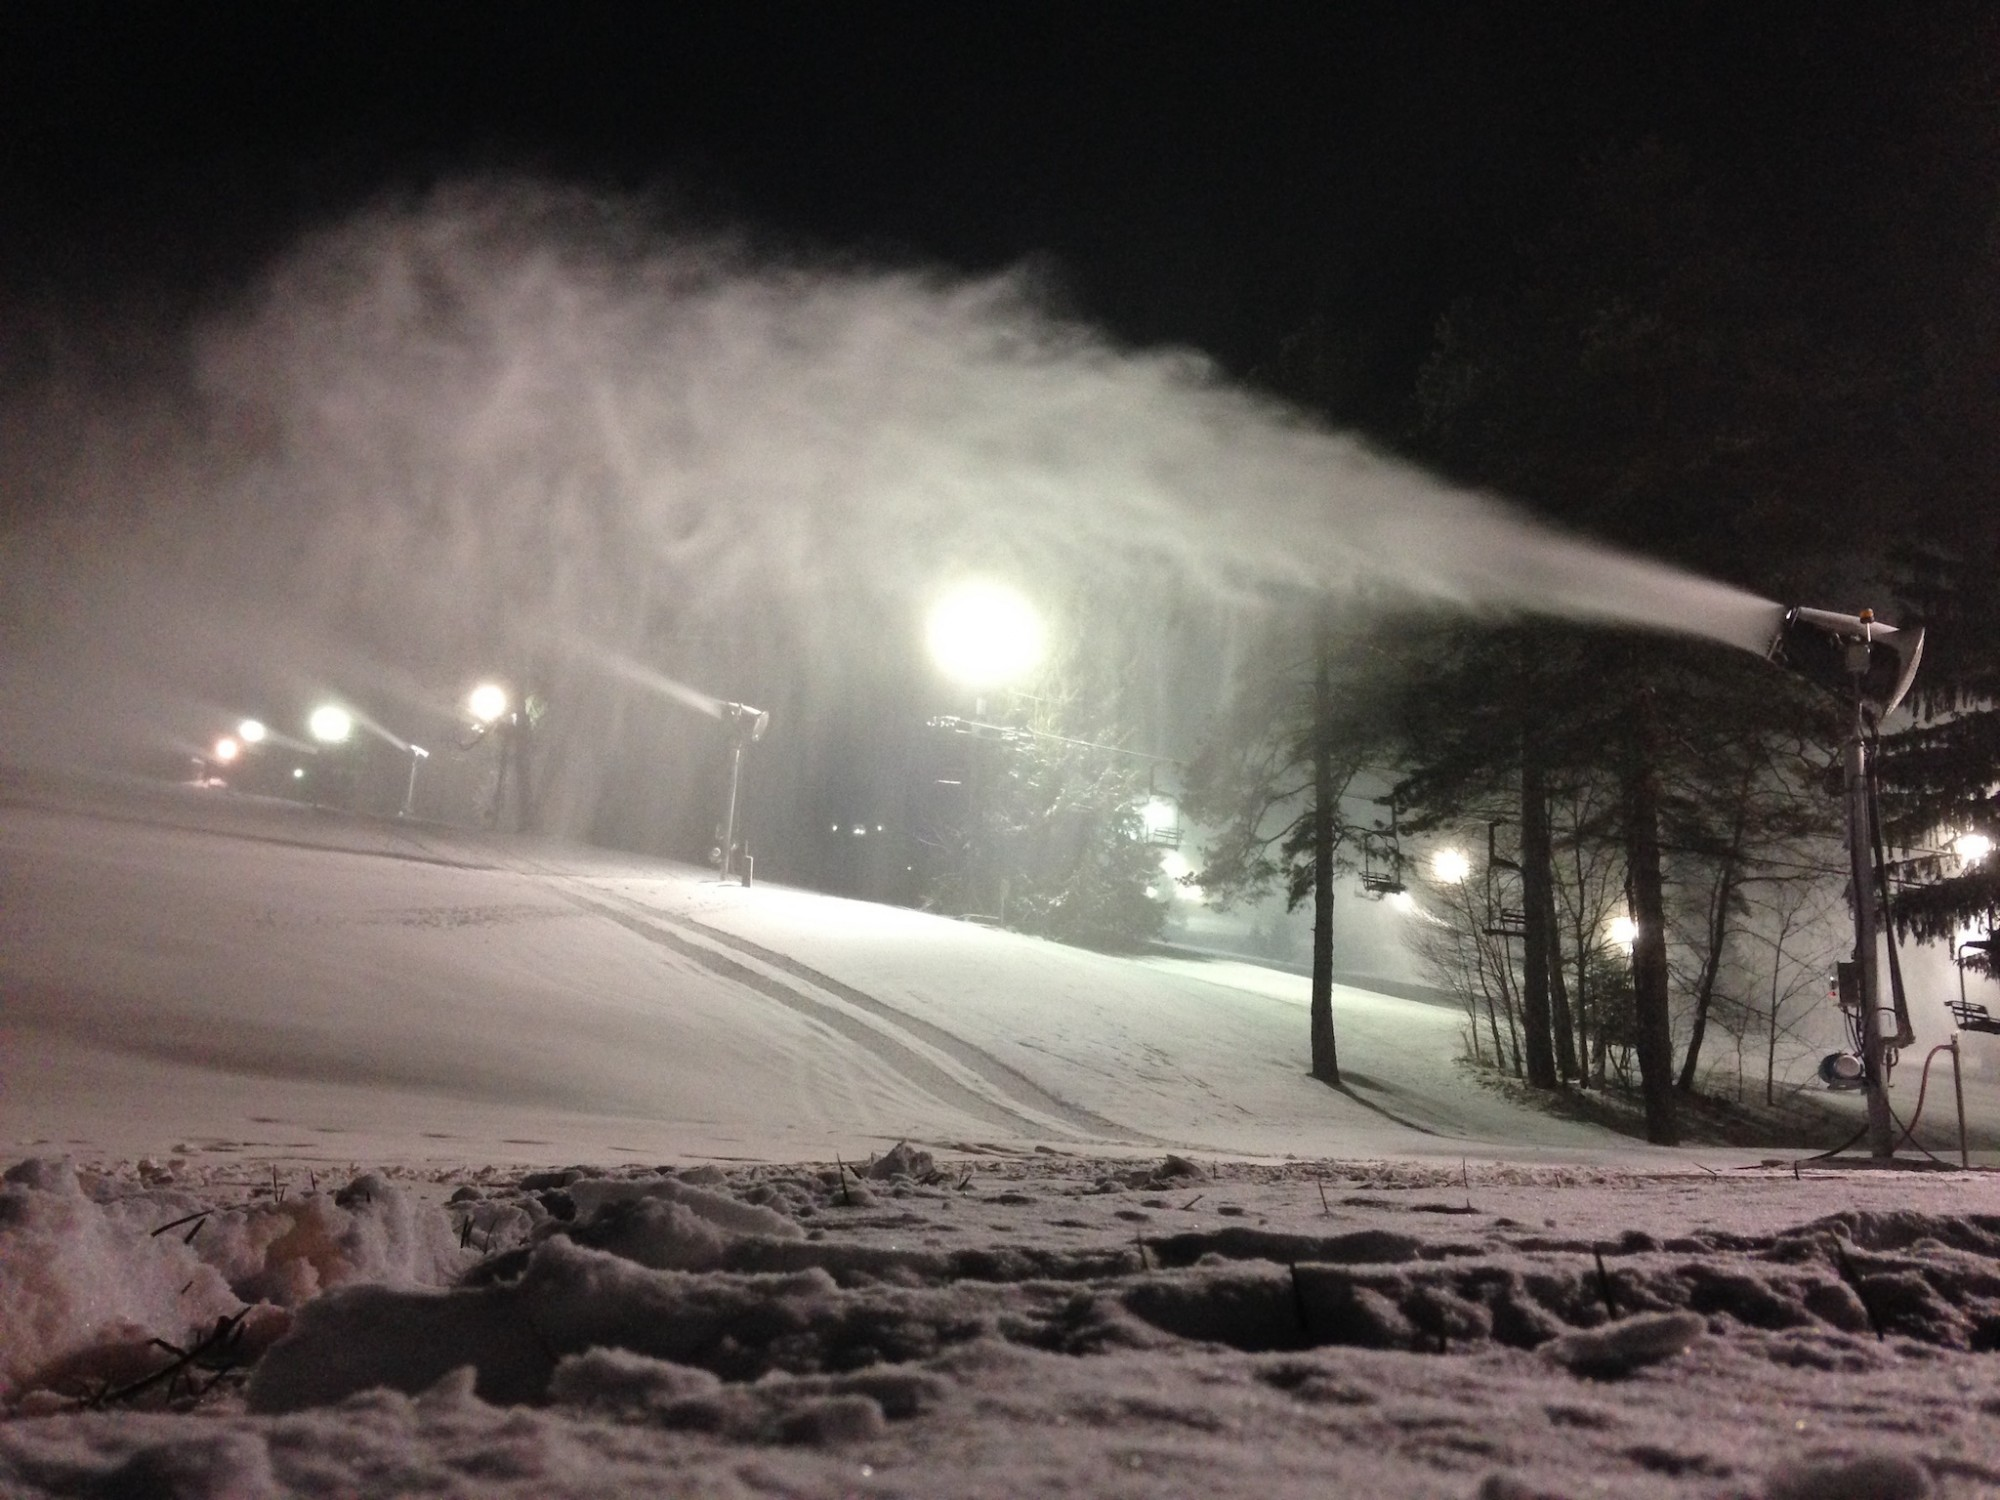 Nighttime Snowmaking at Snow Trails in Mansfield, Ohio